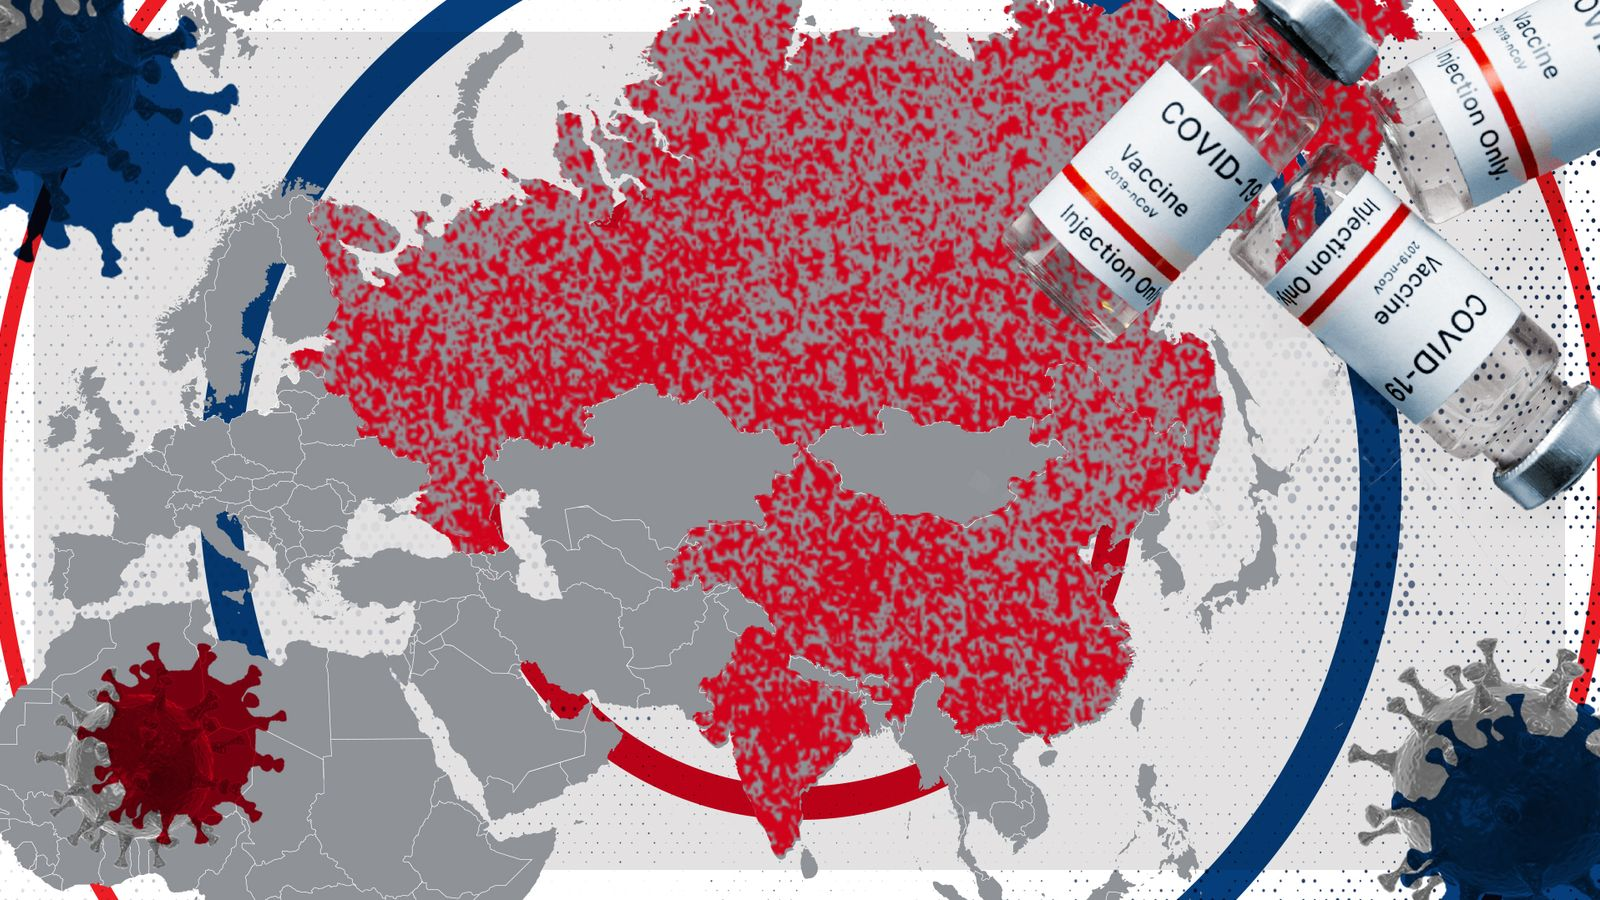 COVID-19 'vaccine diplomacy': China, Russia and India cherry-picking the countries they help